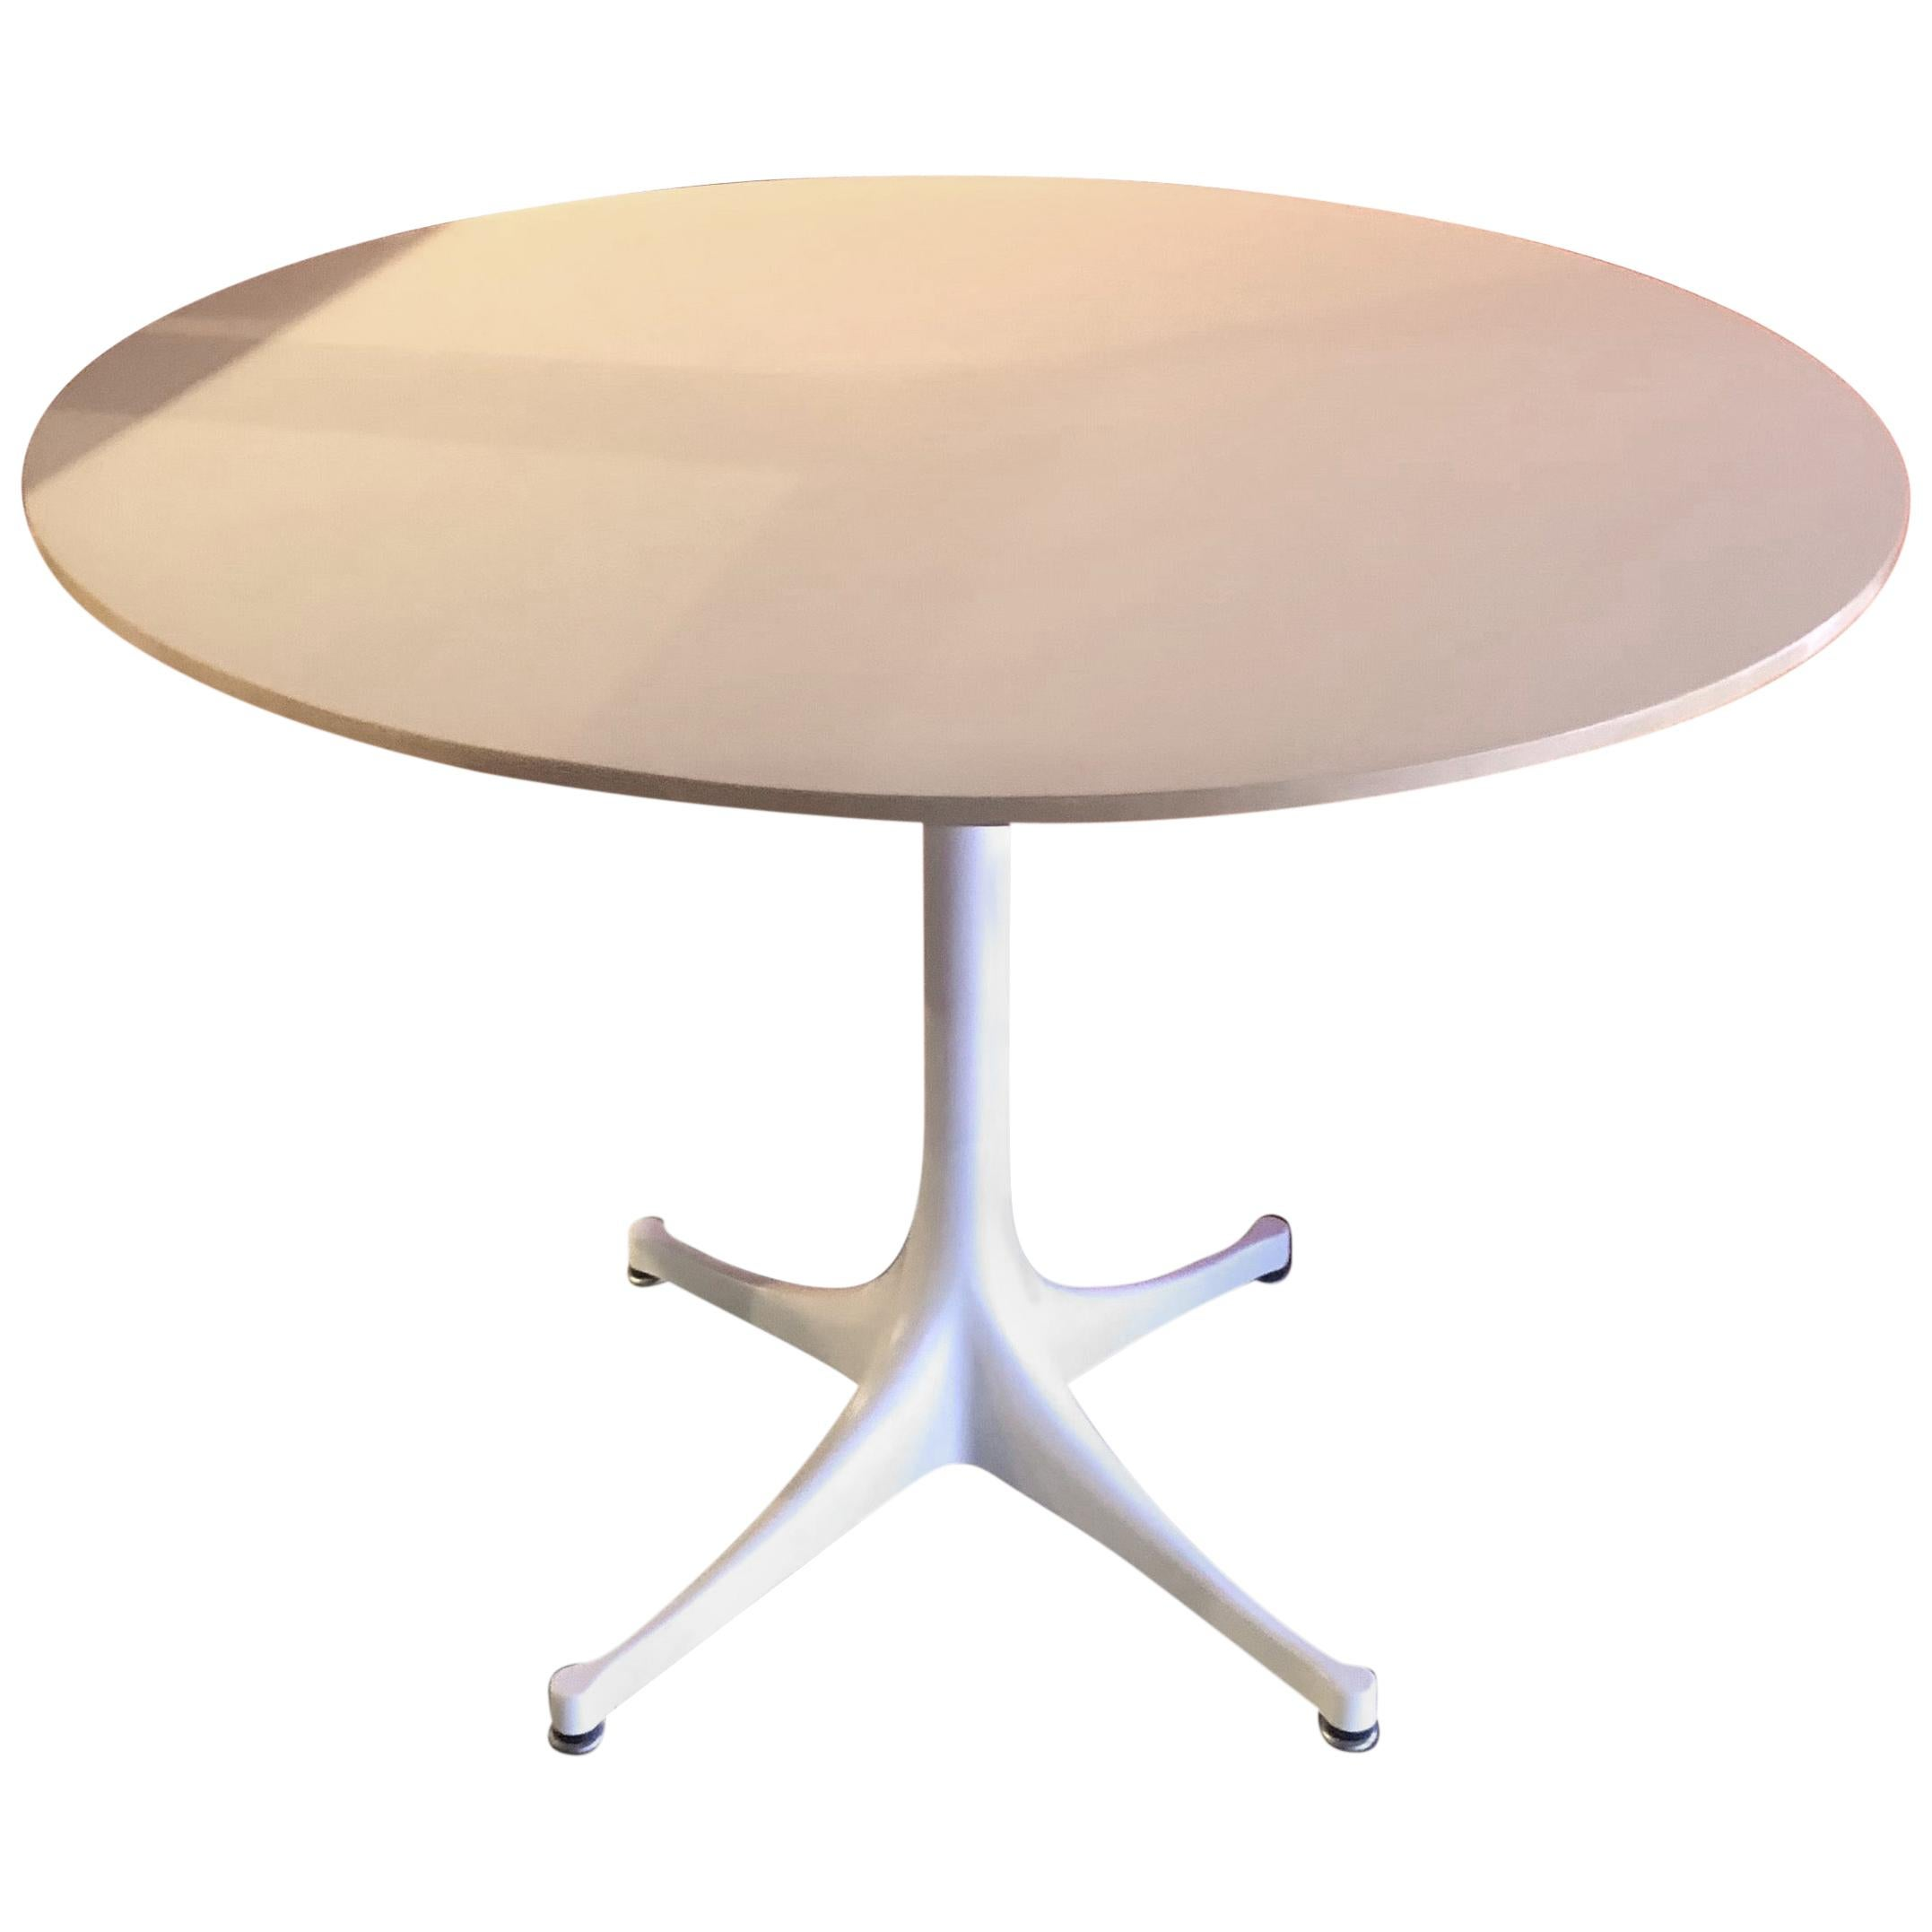 Model 5254 Pedestal Table by George Nelson for Herman Miller